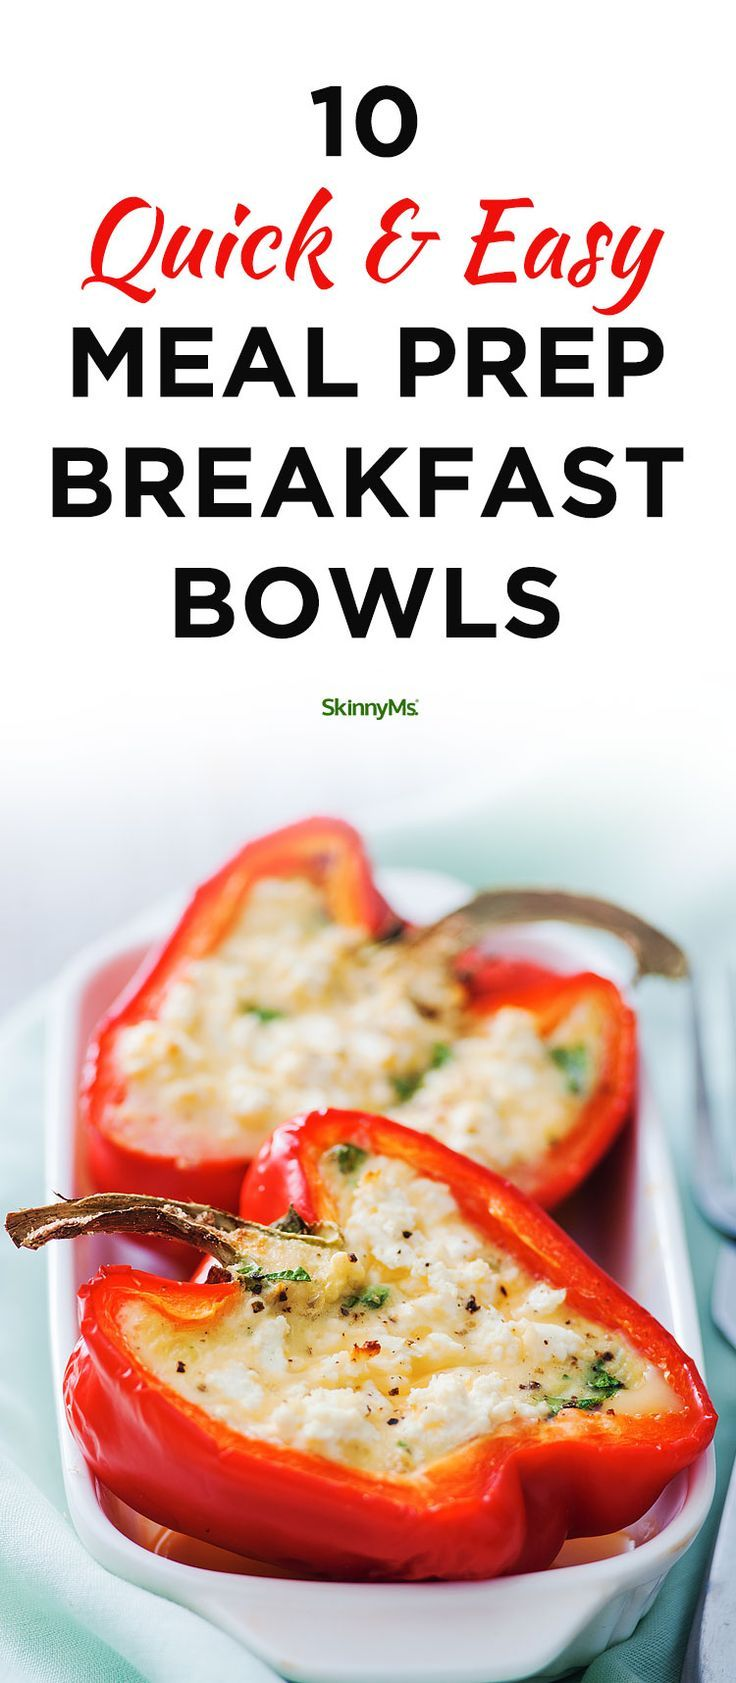 10 Quick & Easy Meal Prep Breakfast Bowls images